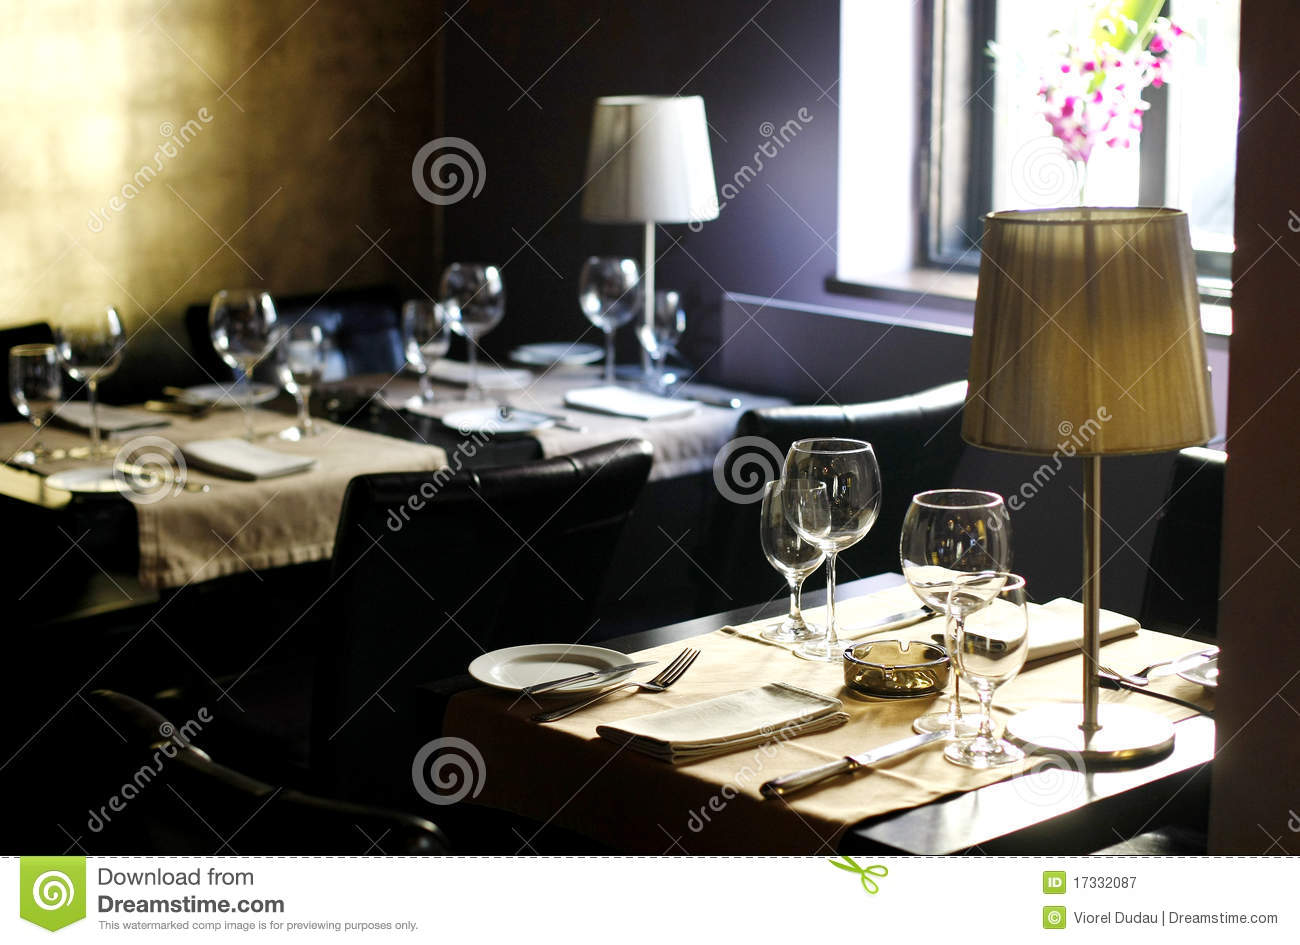 Elegant interior of a stylish restaurant